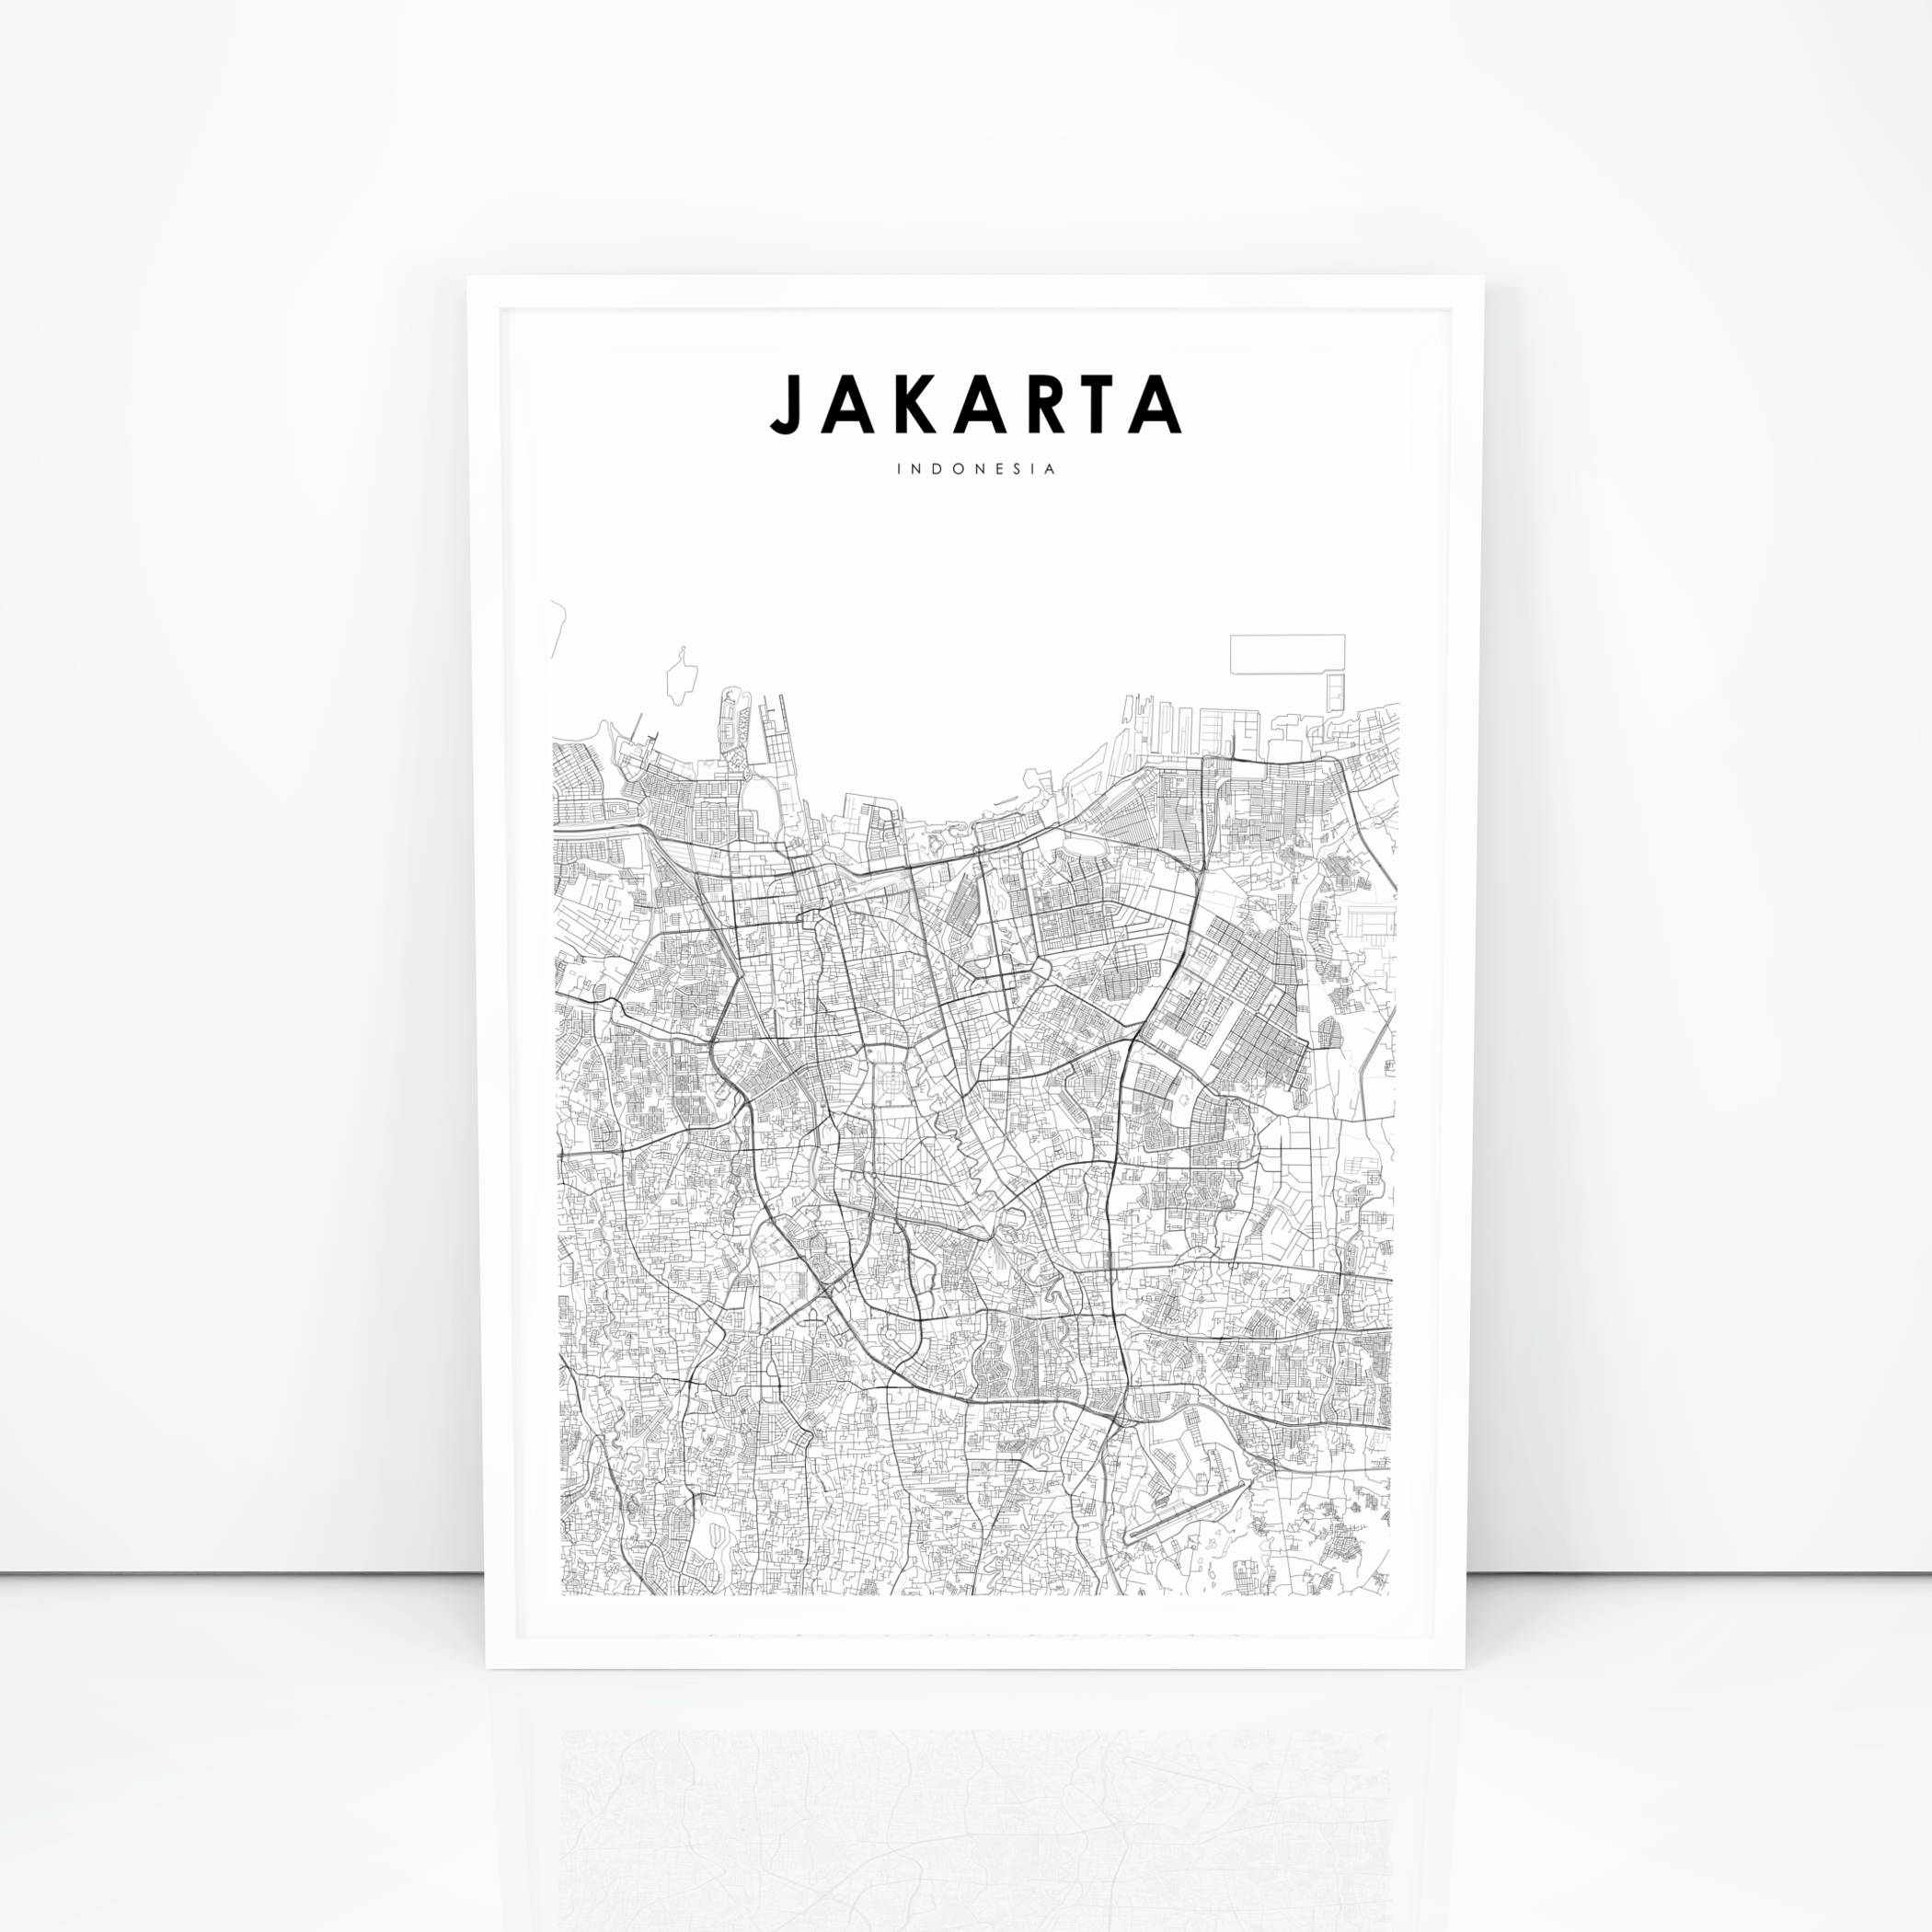 Jakarta Map Print Indonesia Map Art Poster City Street Road | Etsy - Print Puzzle Jakarta